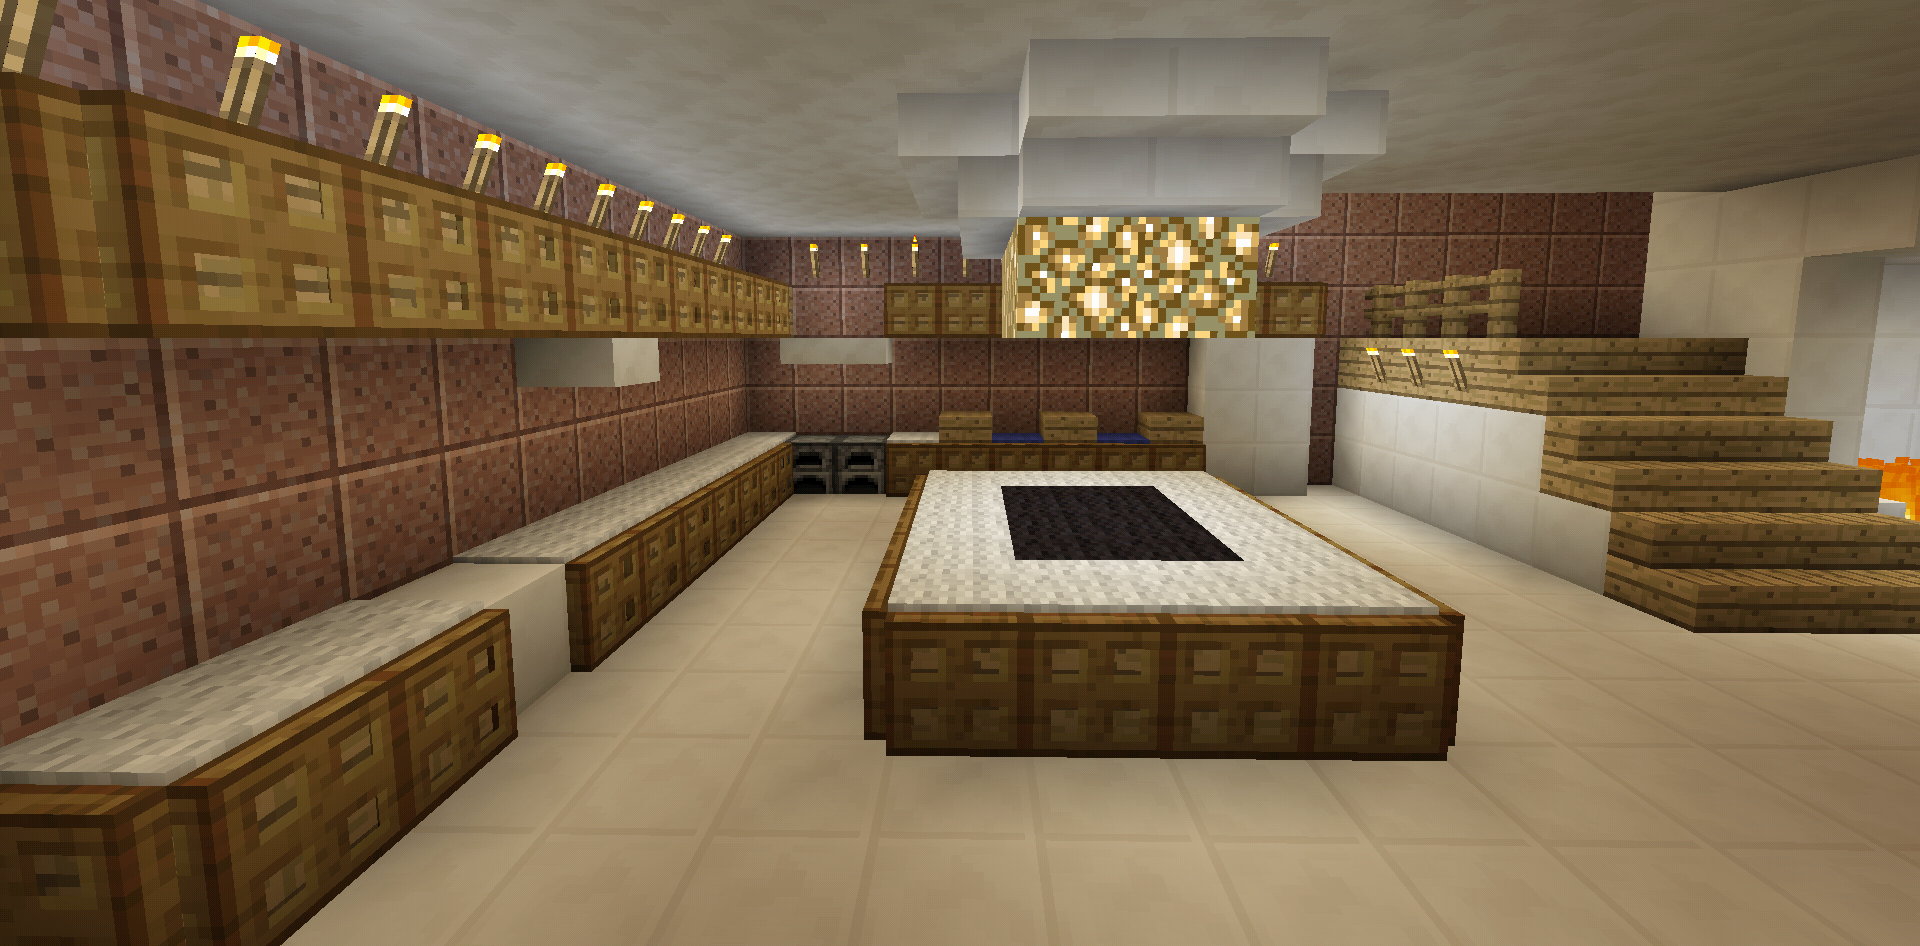 Kitchen Ideas Minecraft Pe minecraft kitchen stove sink fridge | minecraft creations